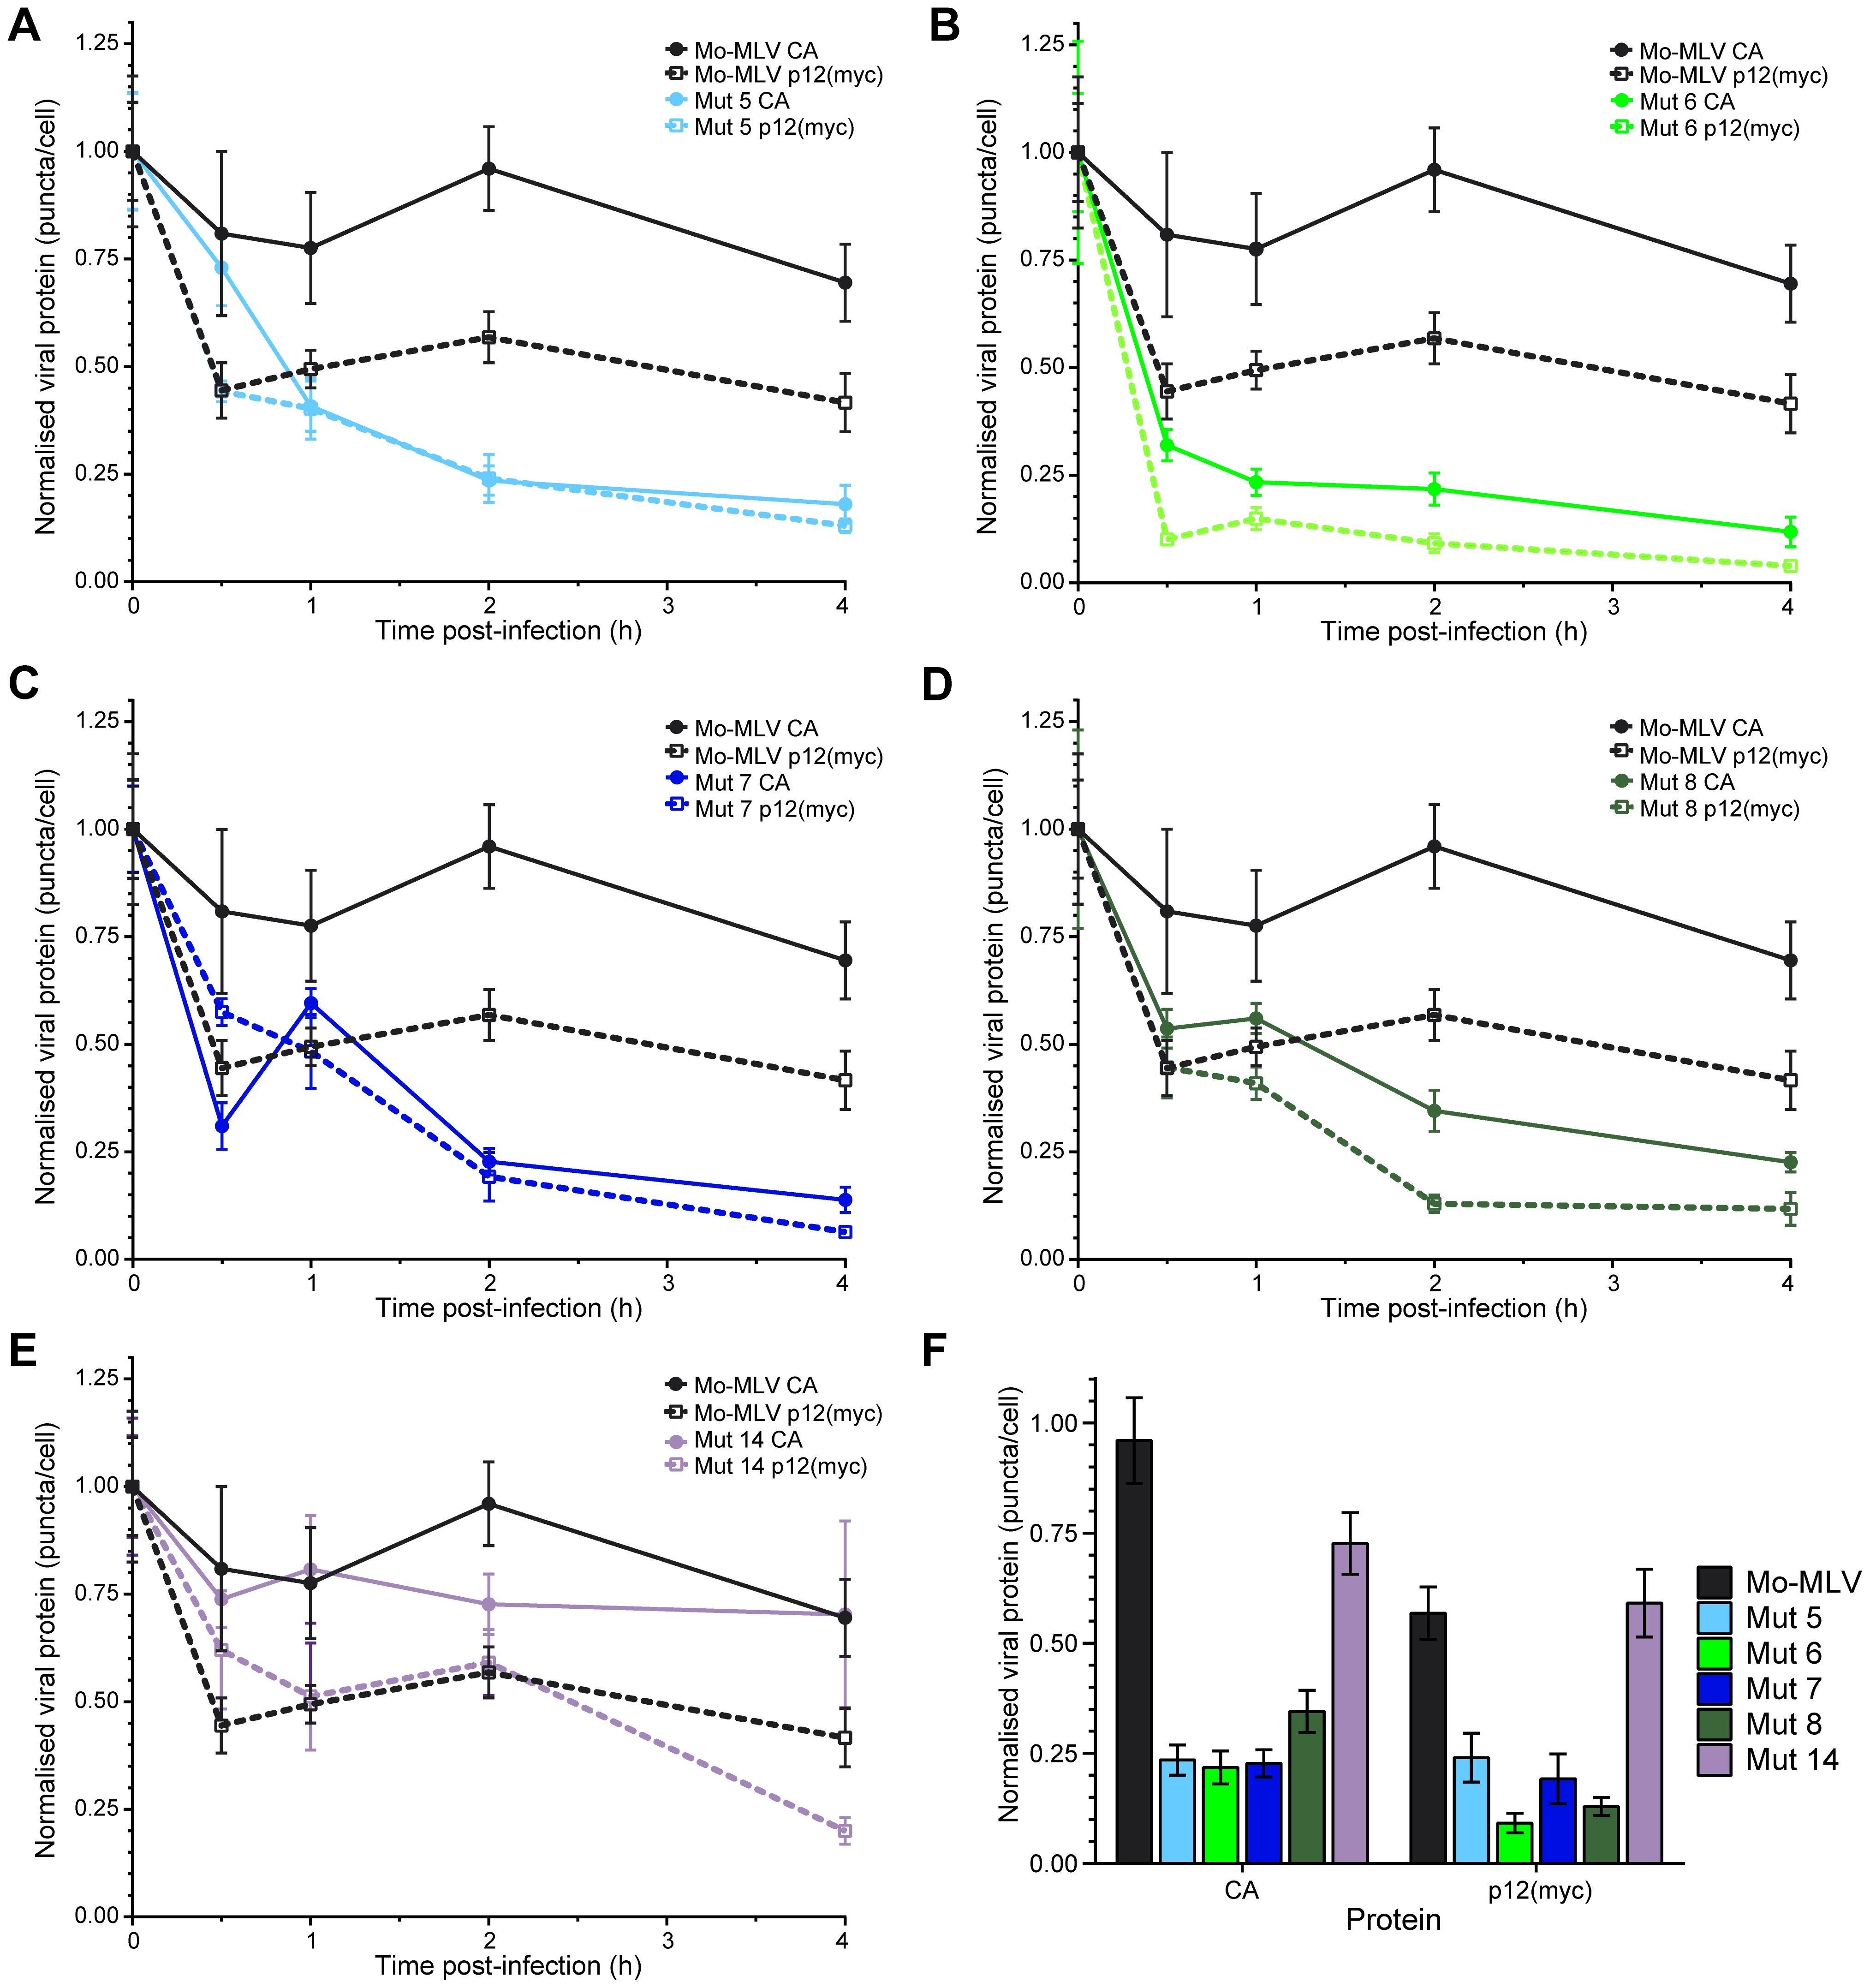 Kinetics of p12 and CA loss from cells infected with Mo-MLV.